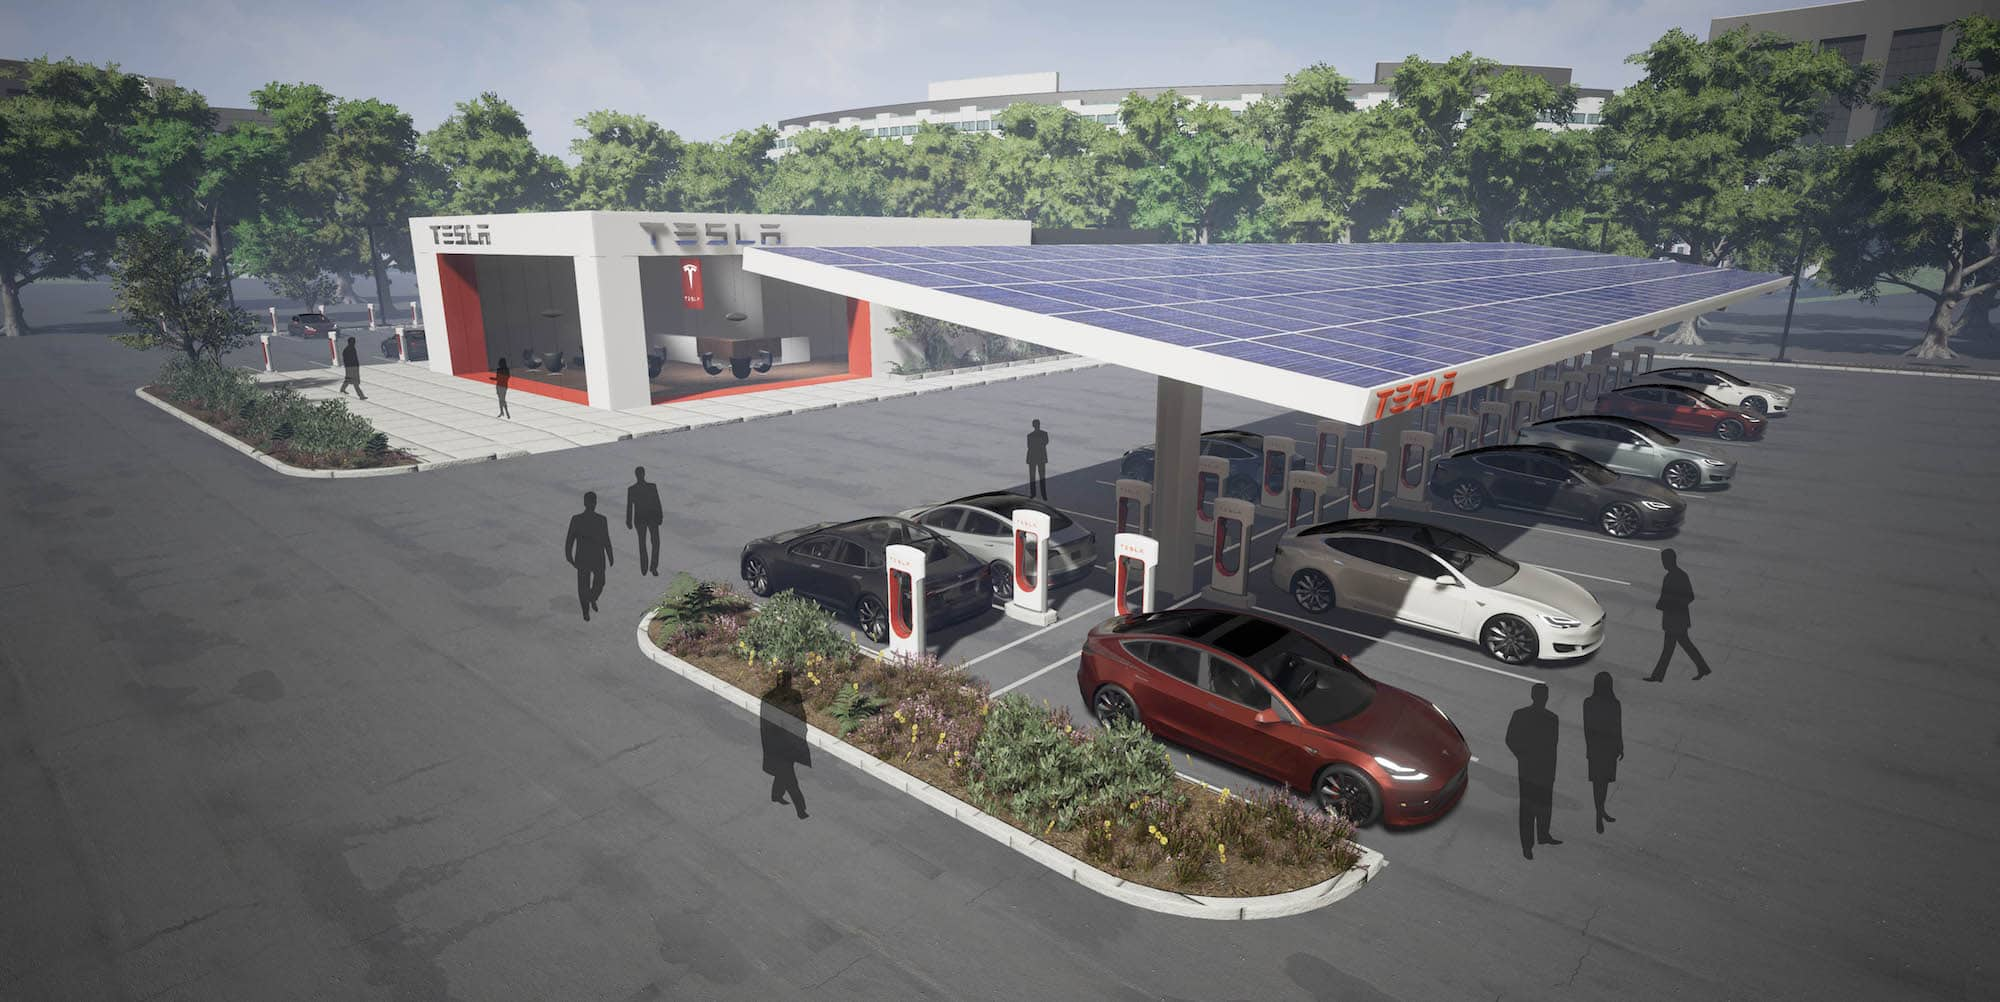 Concept Tesla Supercharging station from 2017-04-24 Blog Post